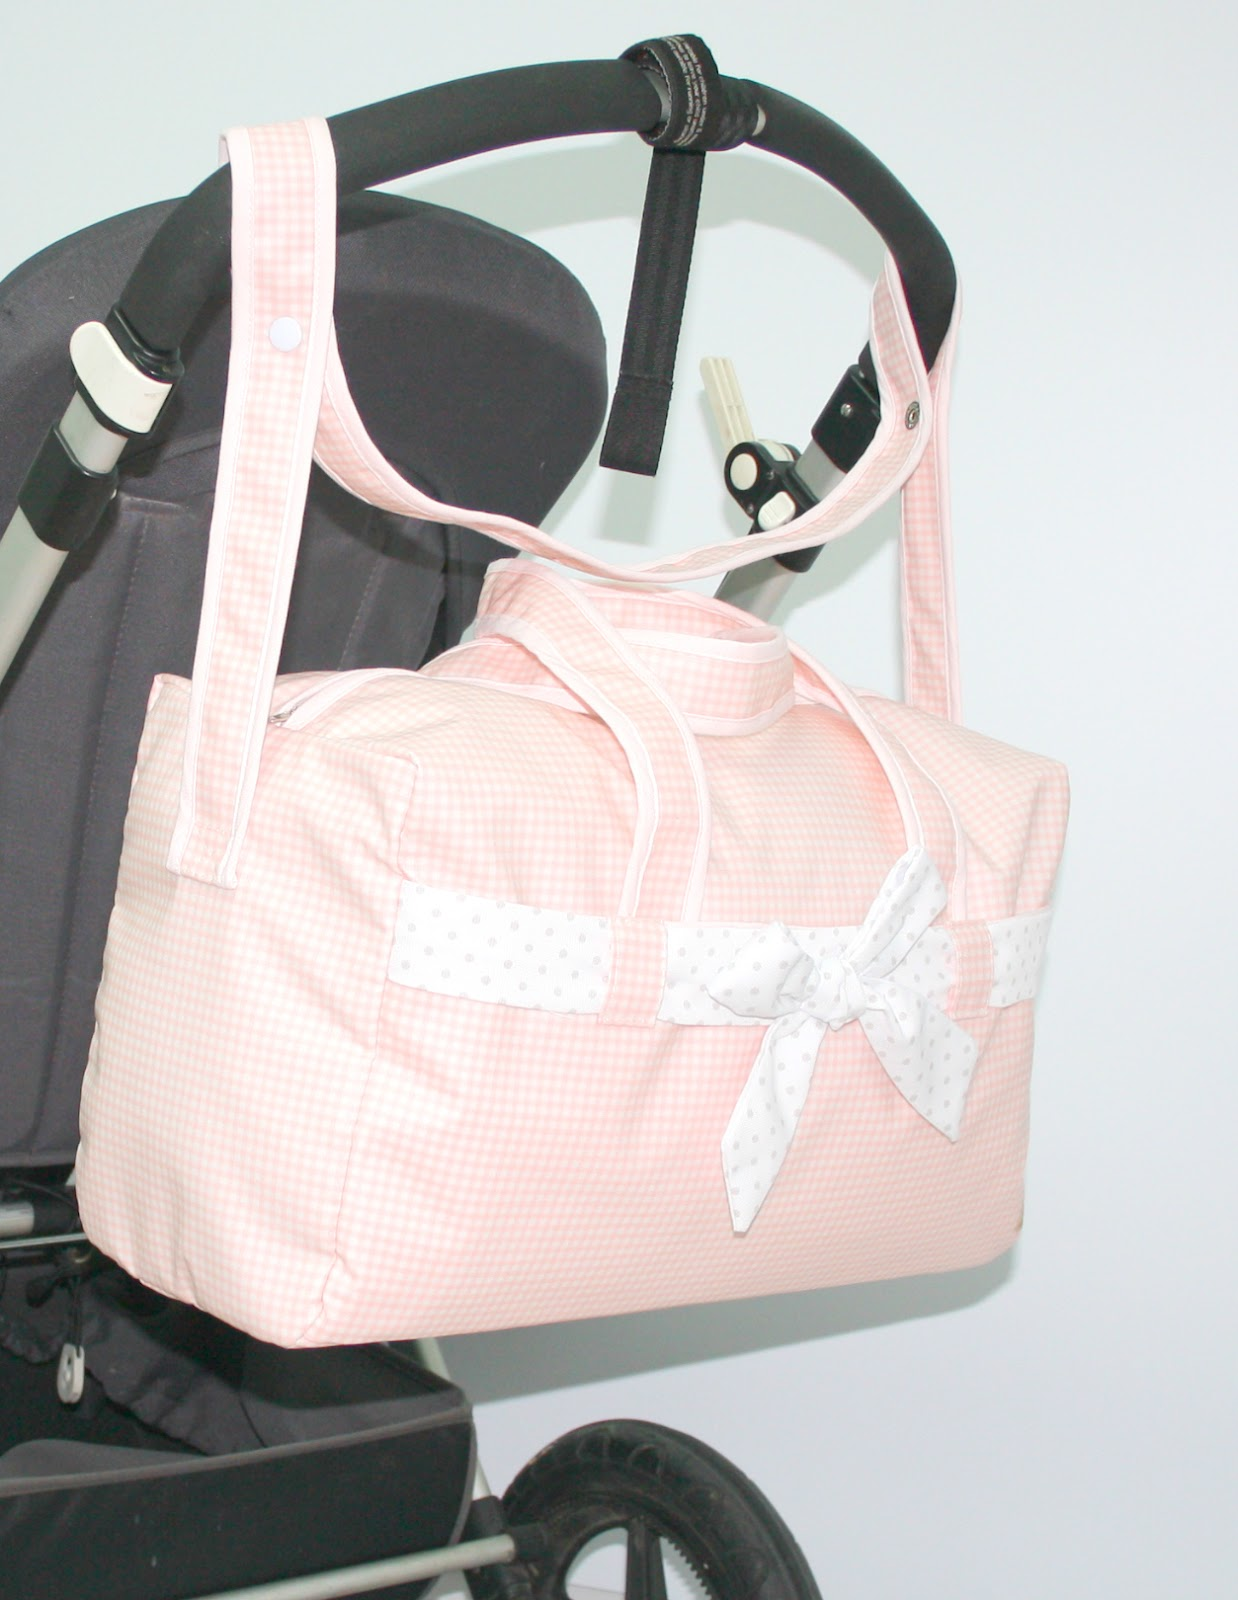 maclaren maternity bag